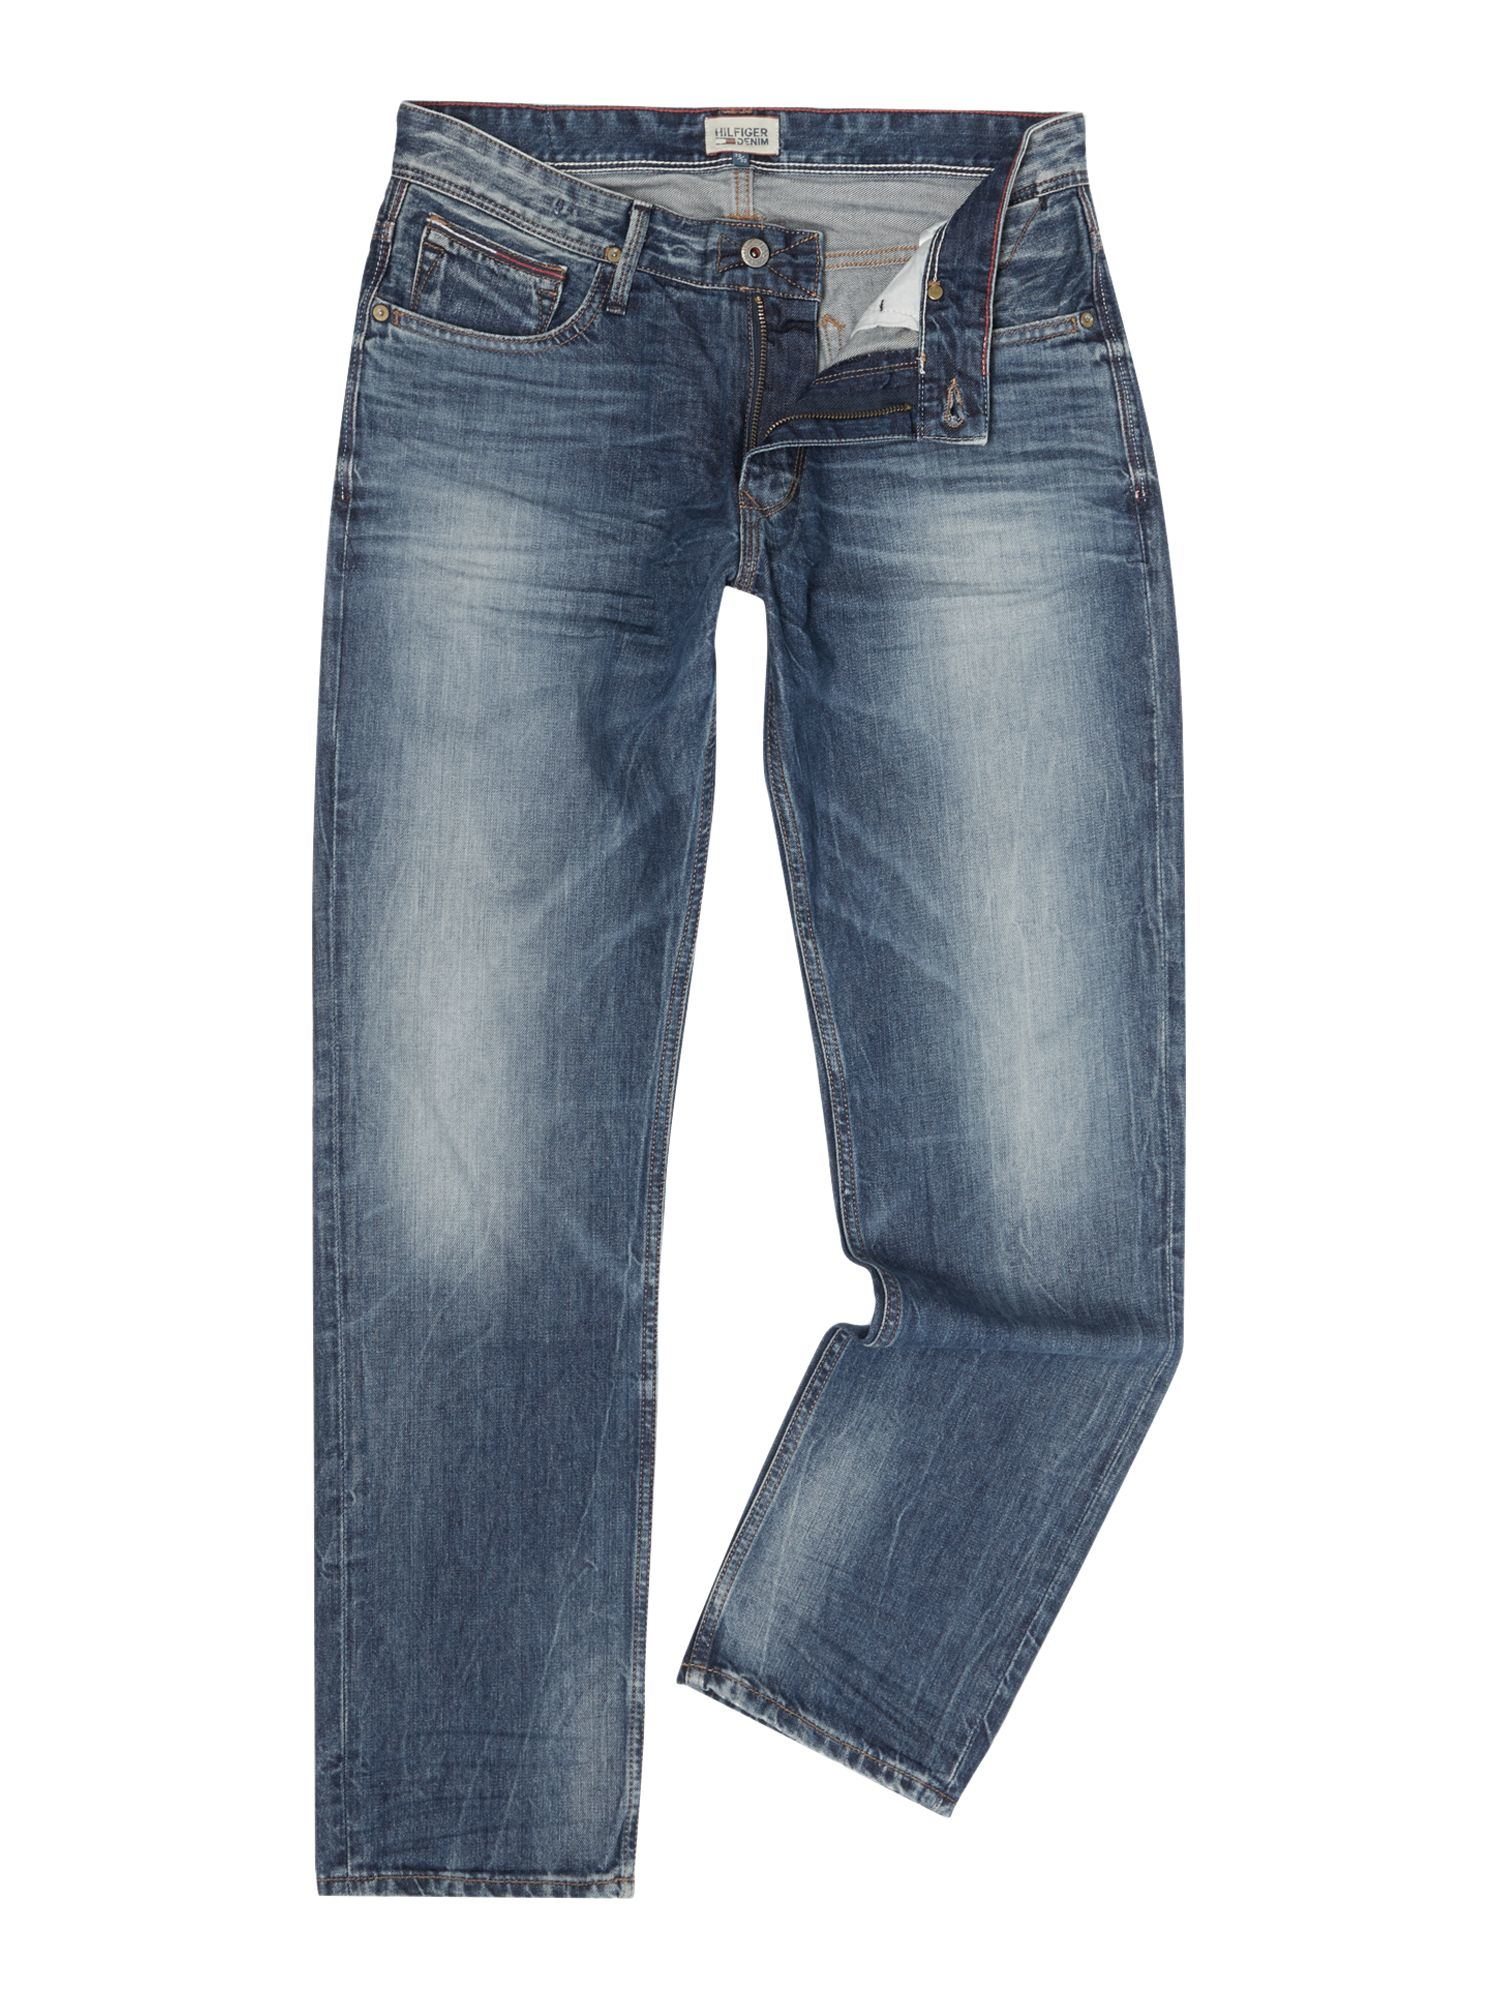 Tommy hilfiger Ryan Peb Jeans in Blue for Men - Save 50% | Lyst